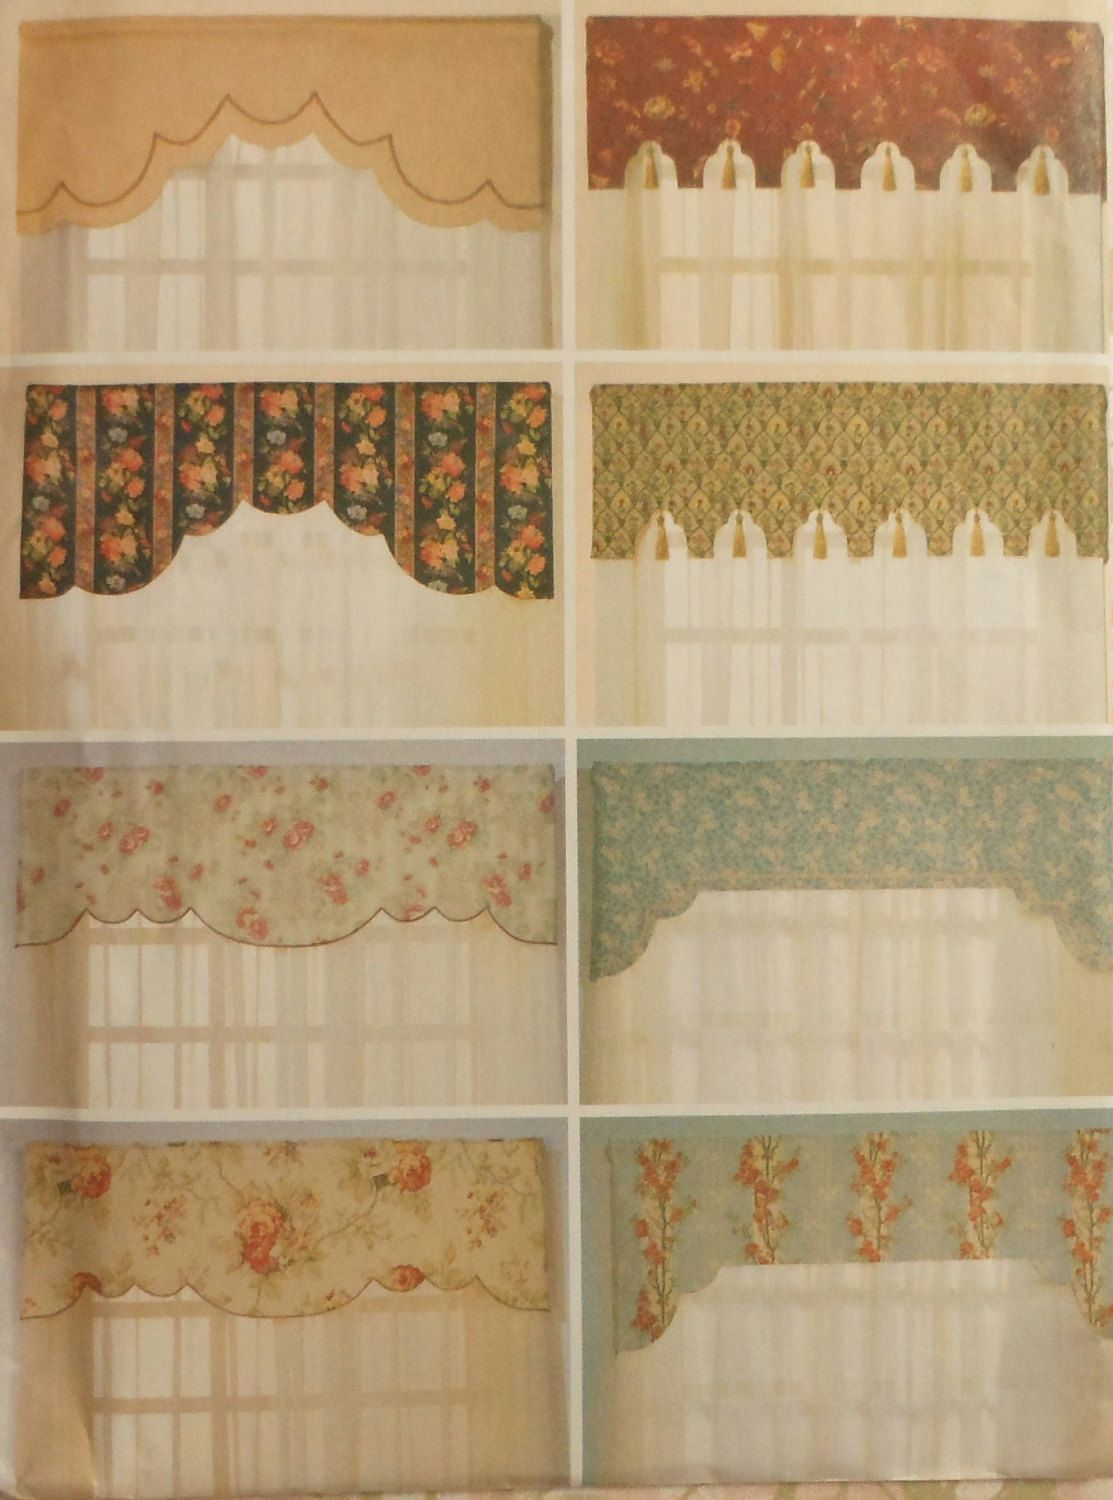 Reversible Valances Sewing Pattern | Sewing Patterns | Pinterest ...